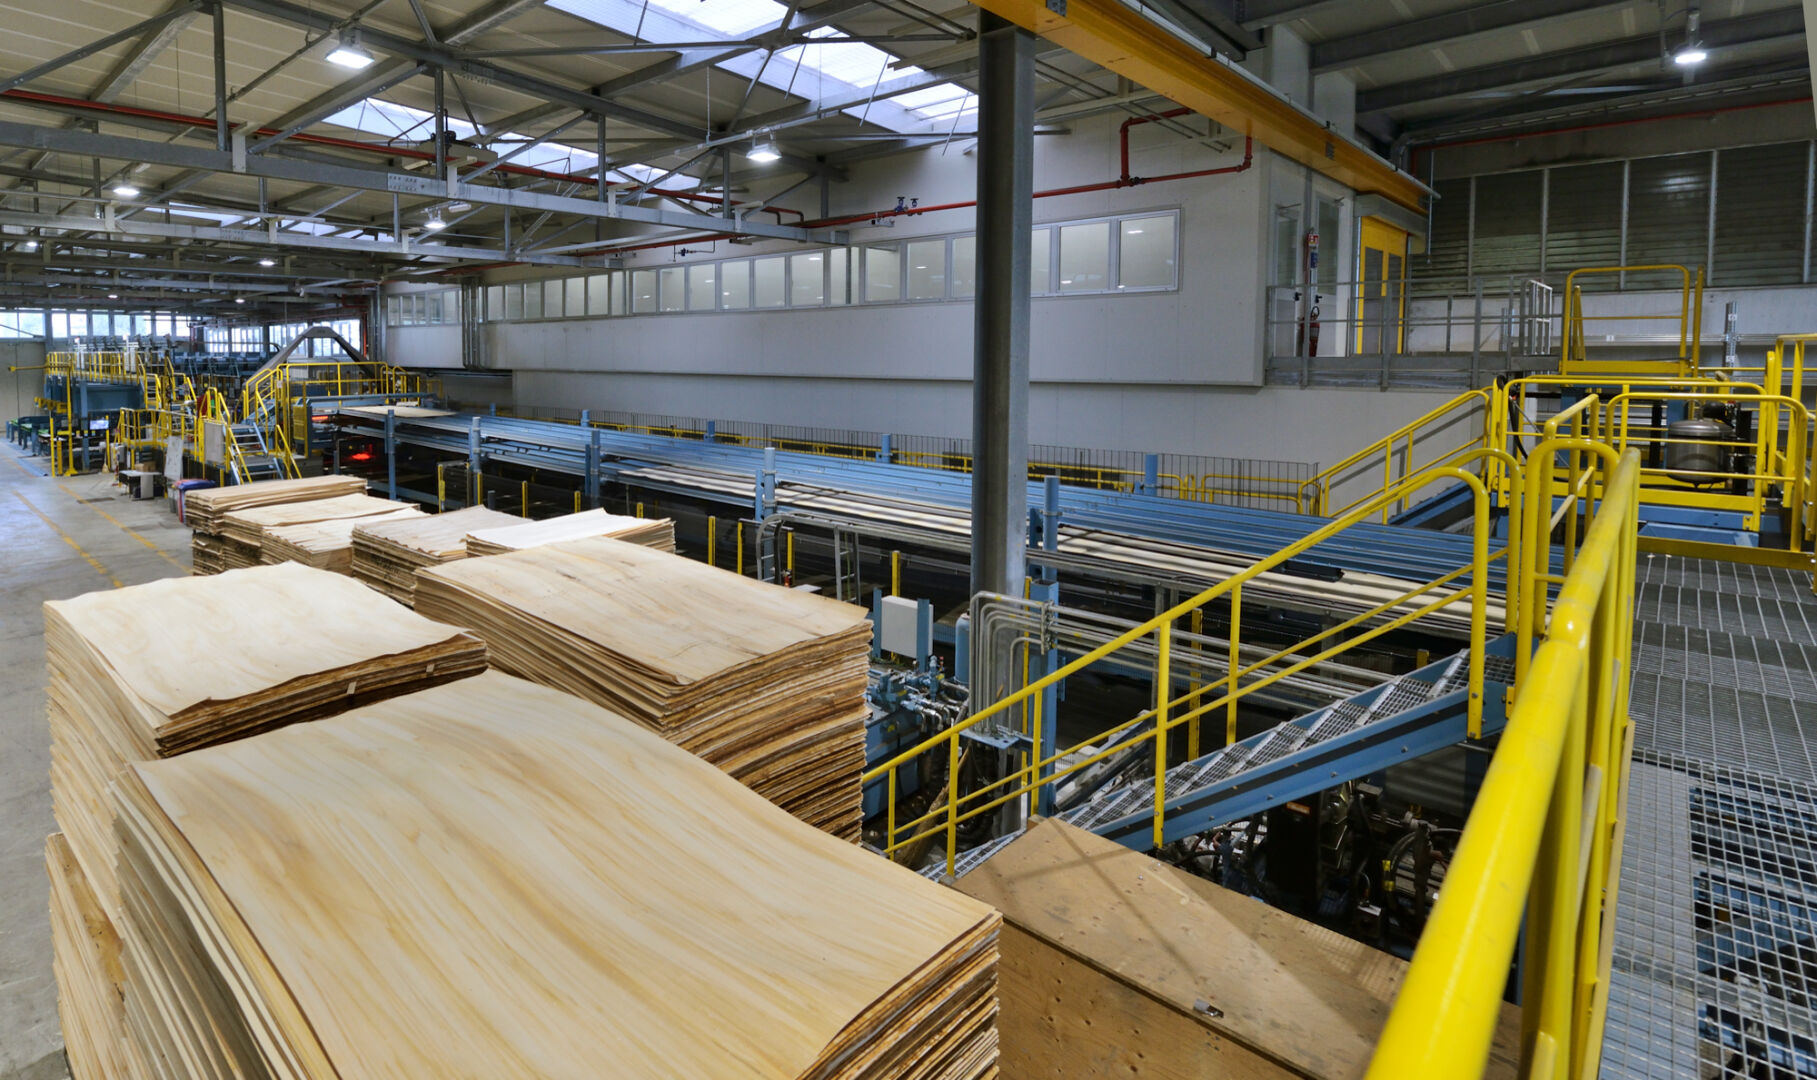 Since 1960, Panguaneta has produced poplar wood plywood for its customers' needs as an industrial building material.